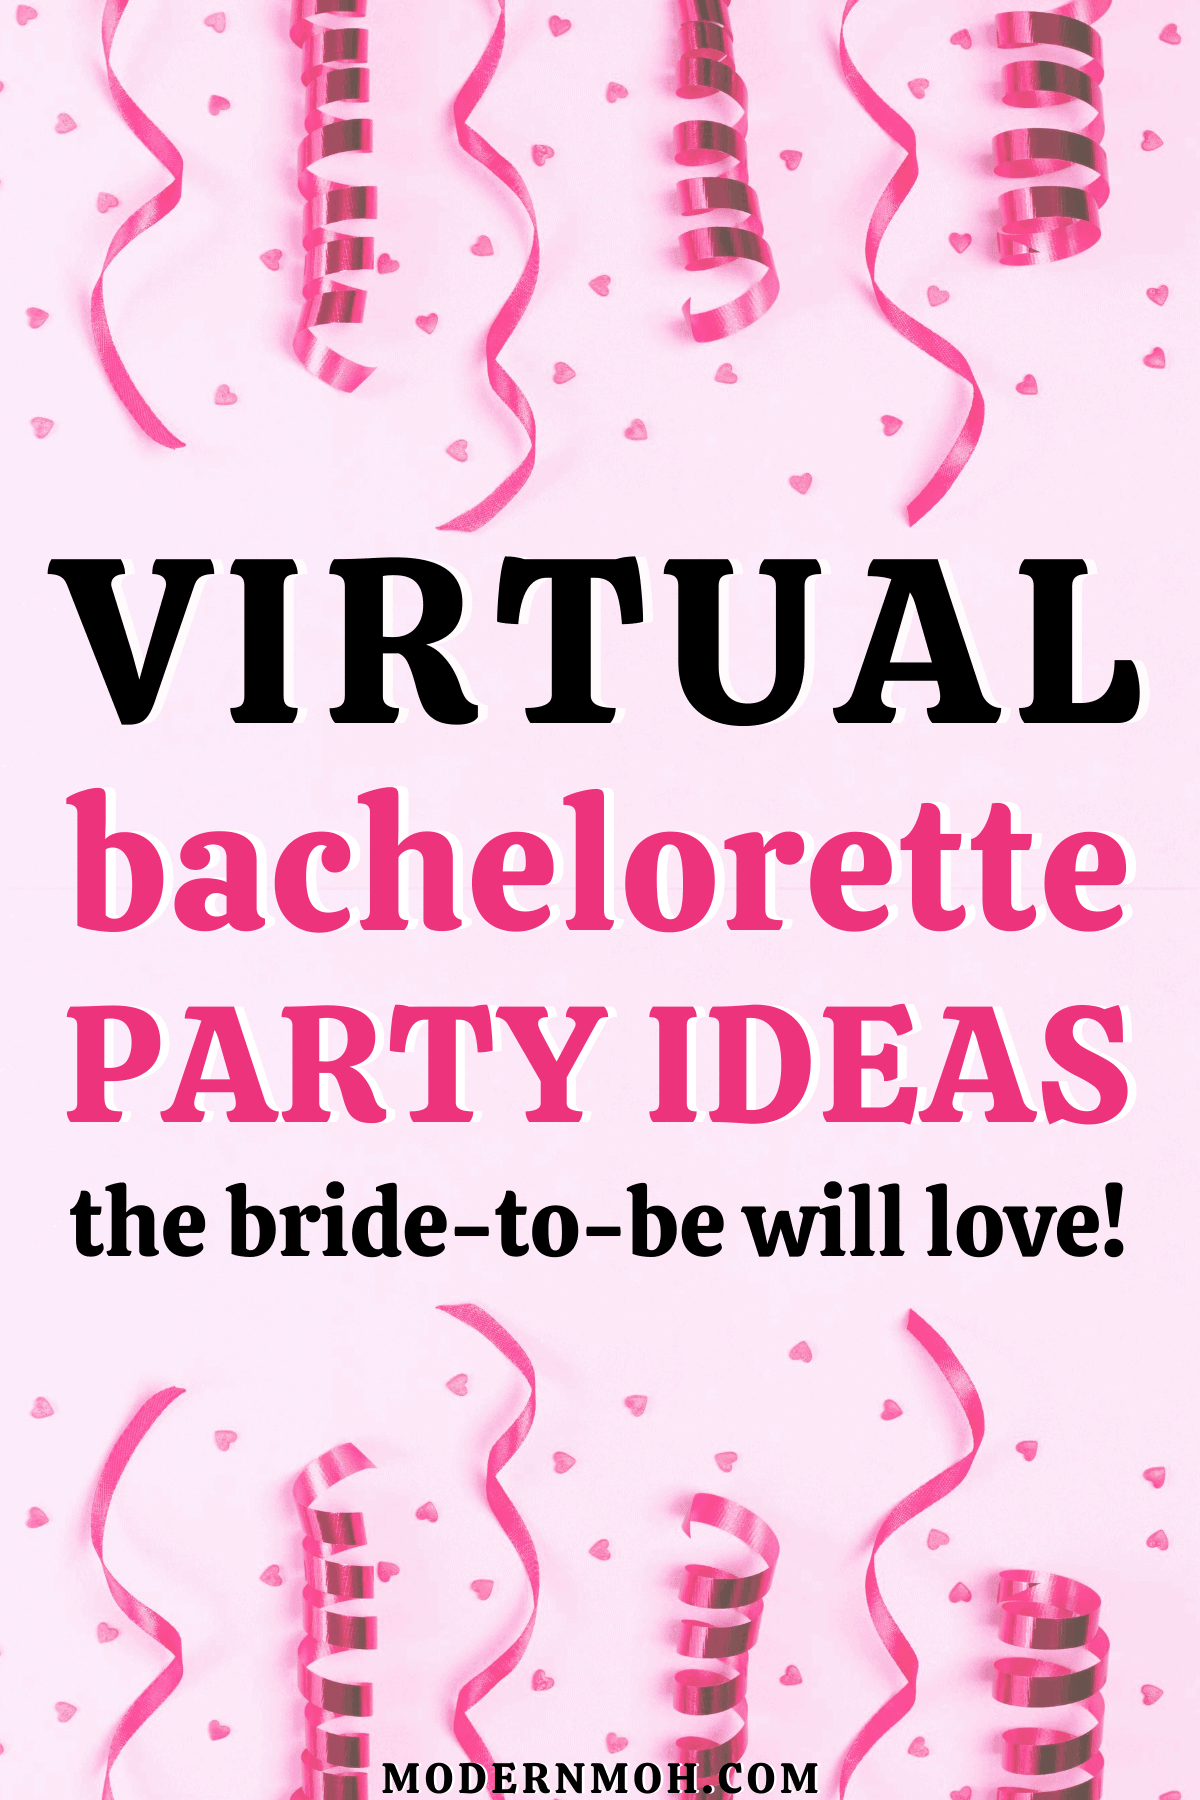 How to Throw a Virtual Bachelorette Party